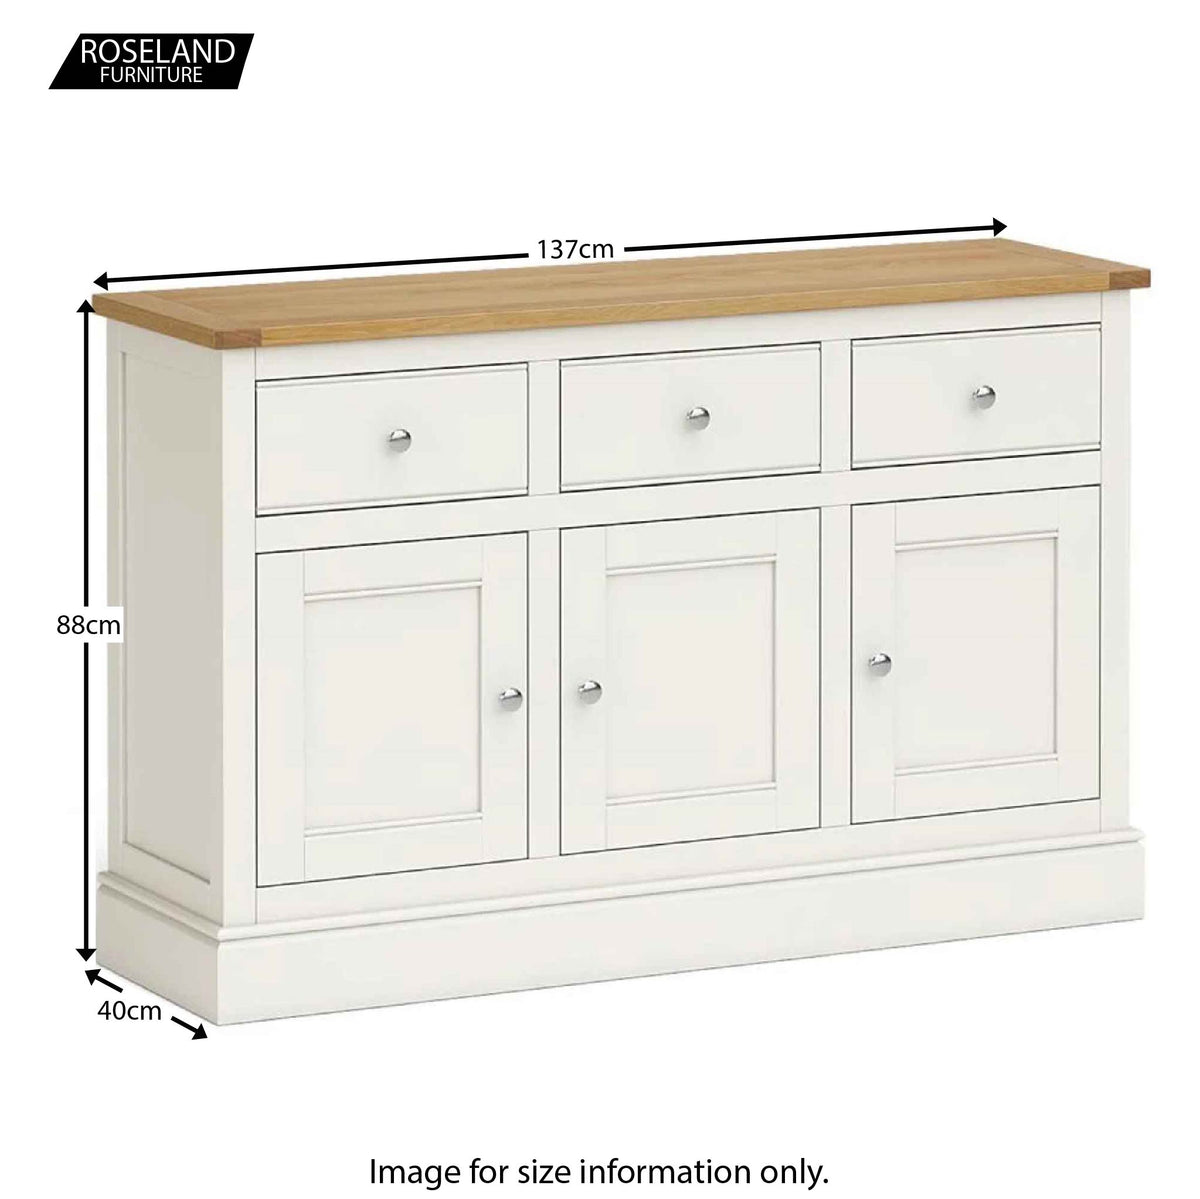 Chichester Large Sideboard in Ivory - Size Guide